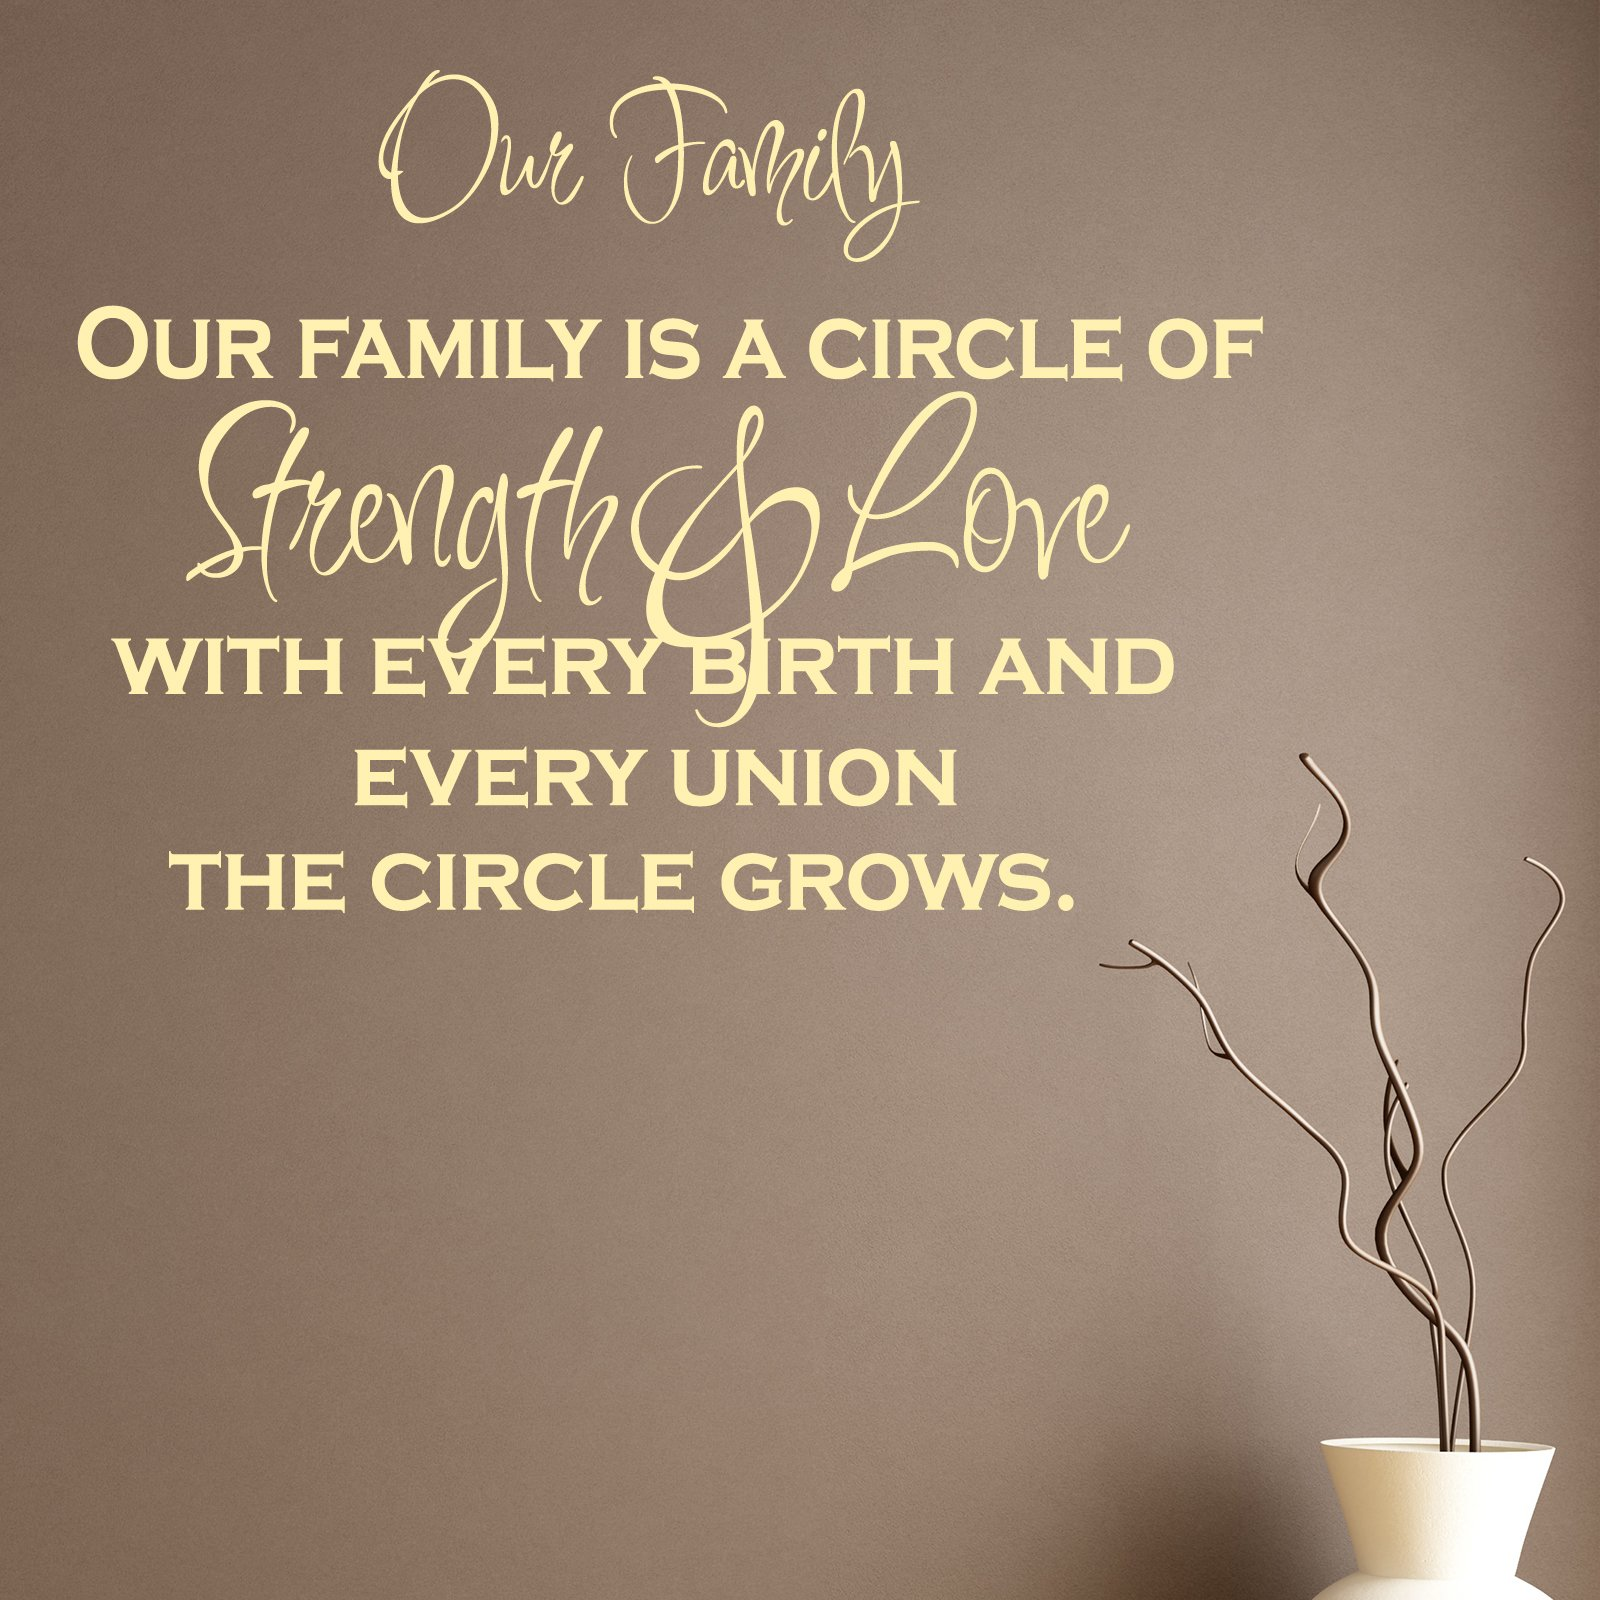 Quotes About Family Love And Strength : family is a circle of strength and love quote wall sticker our family ...